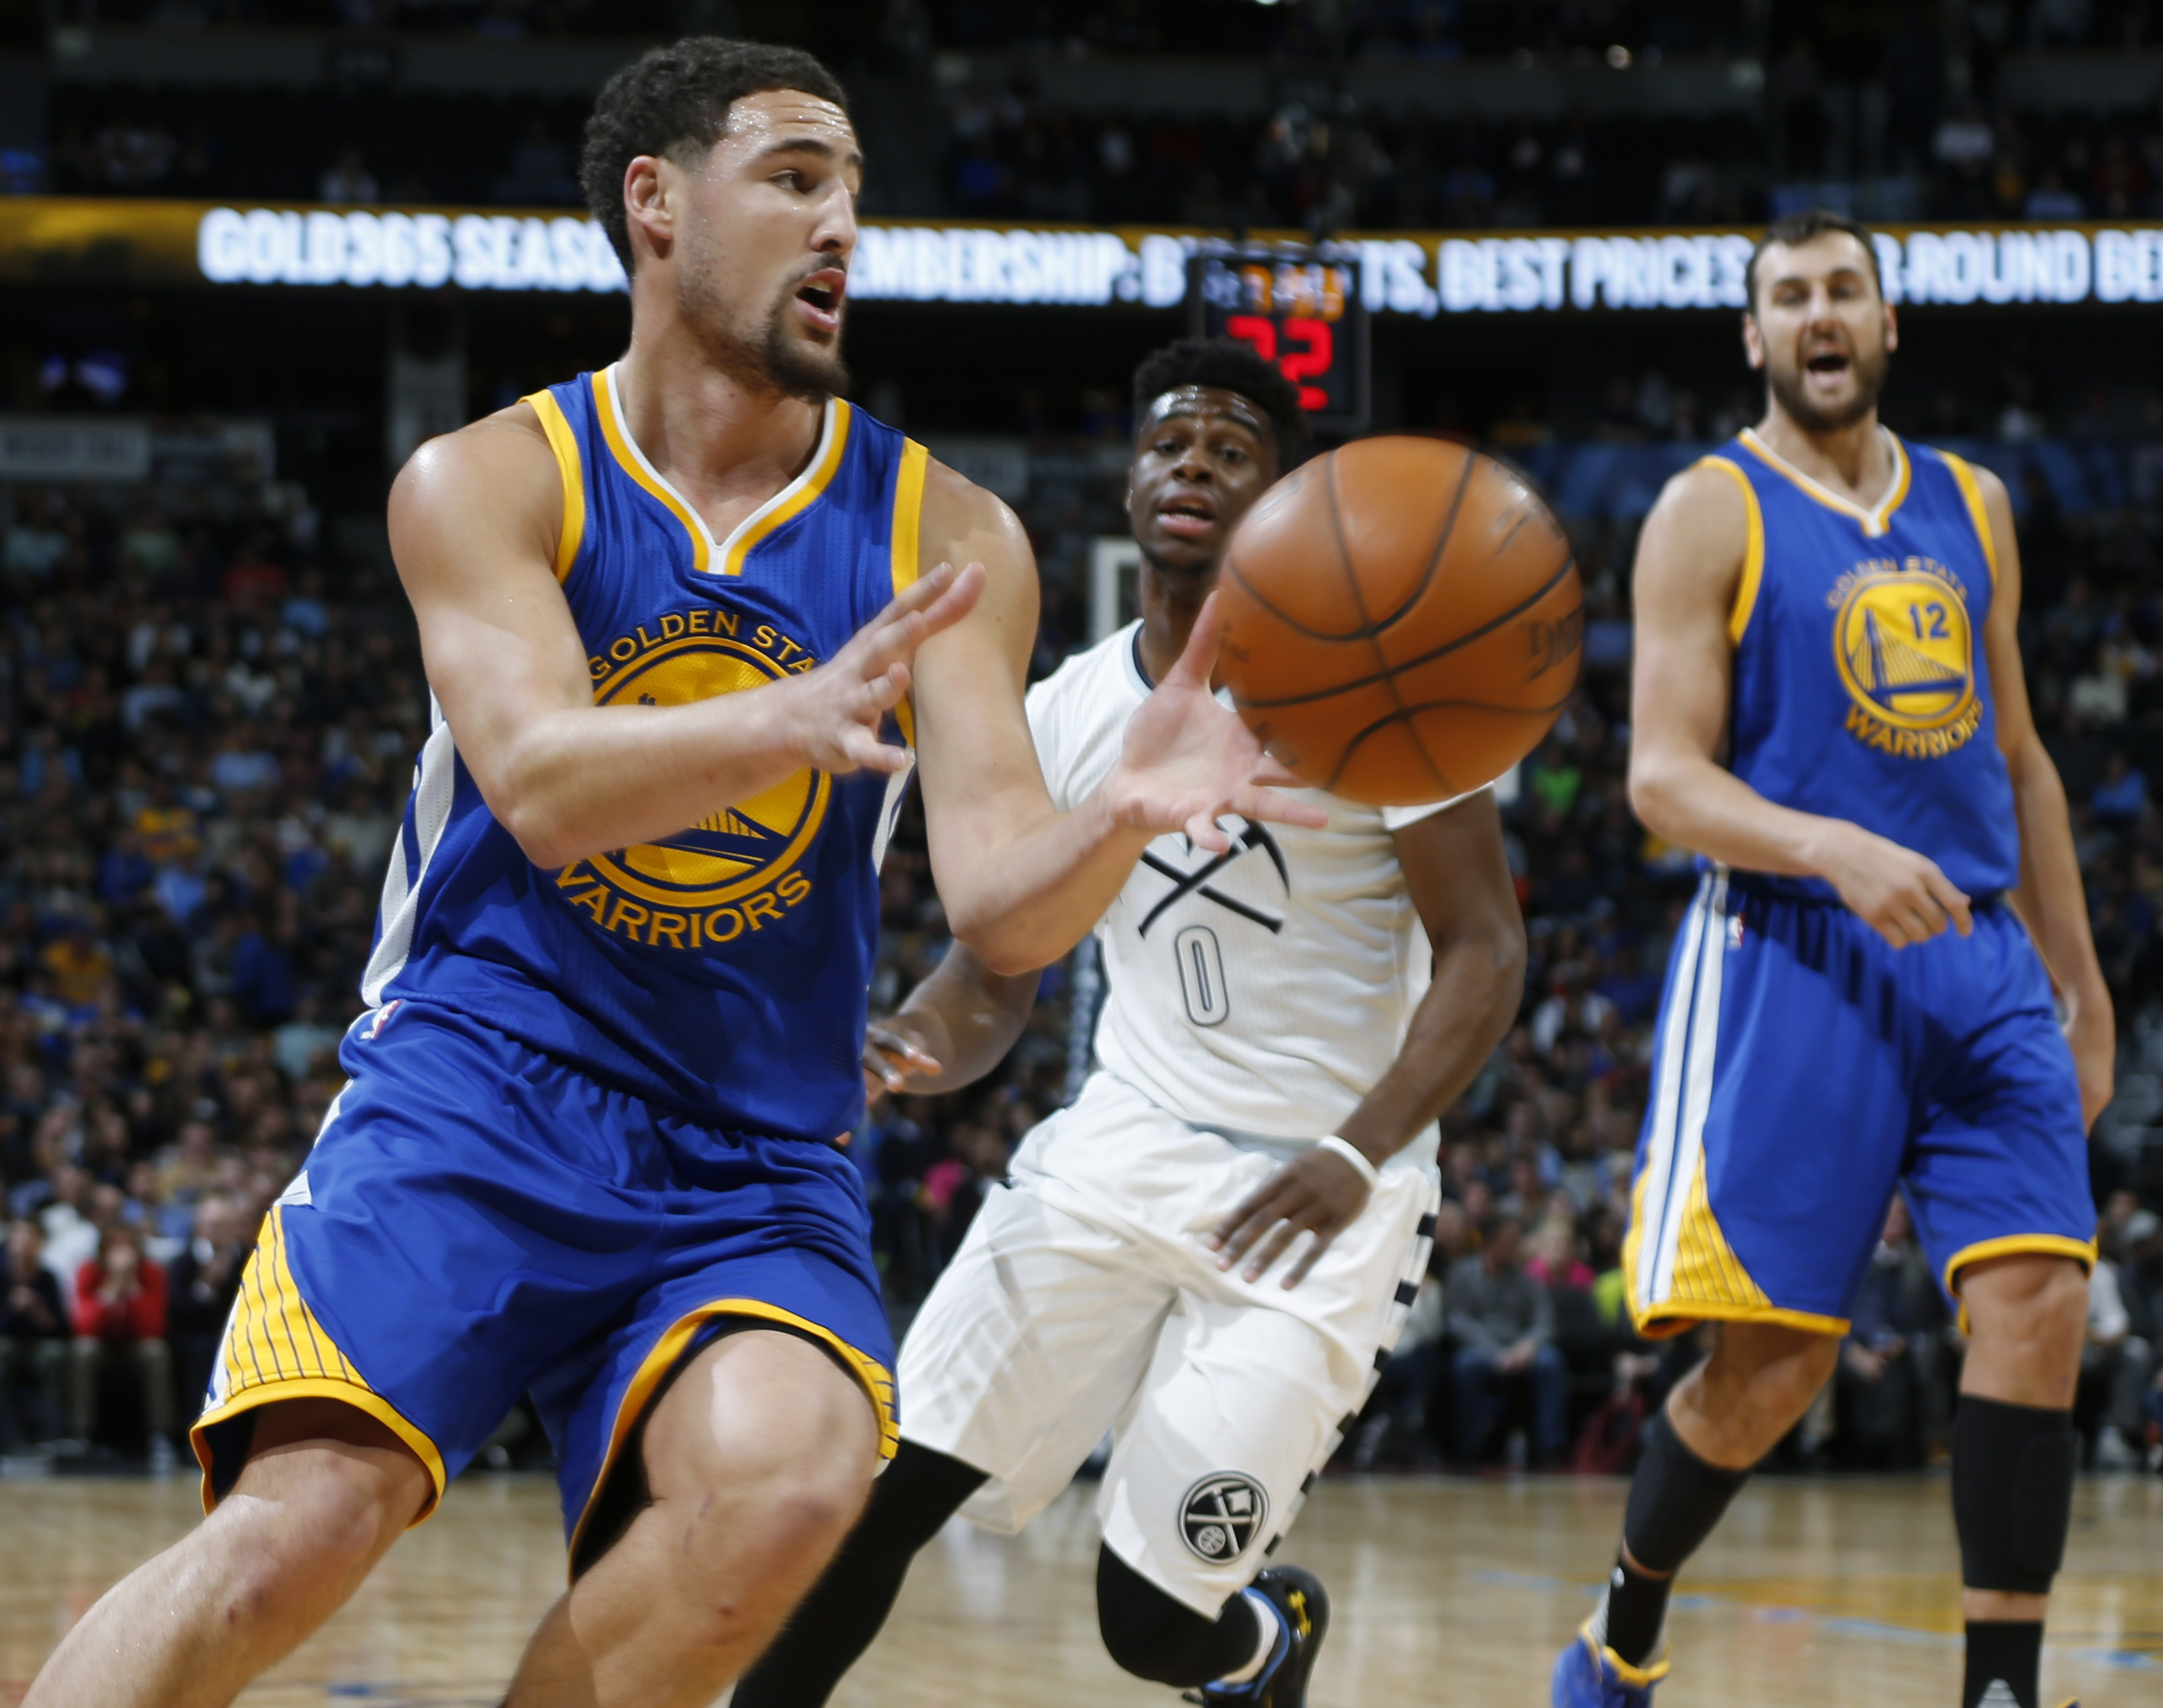 Golden State Warriors guard Klay Thompson, front, fields pass as Denver Nuggets guard Emmanuel Mudiay, center, defends during the first half of an NBA basketball game Sunday, Nov. 22, 2015, in Denver. (AP Photo/David Zalubowski)